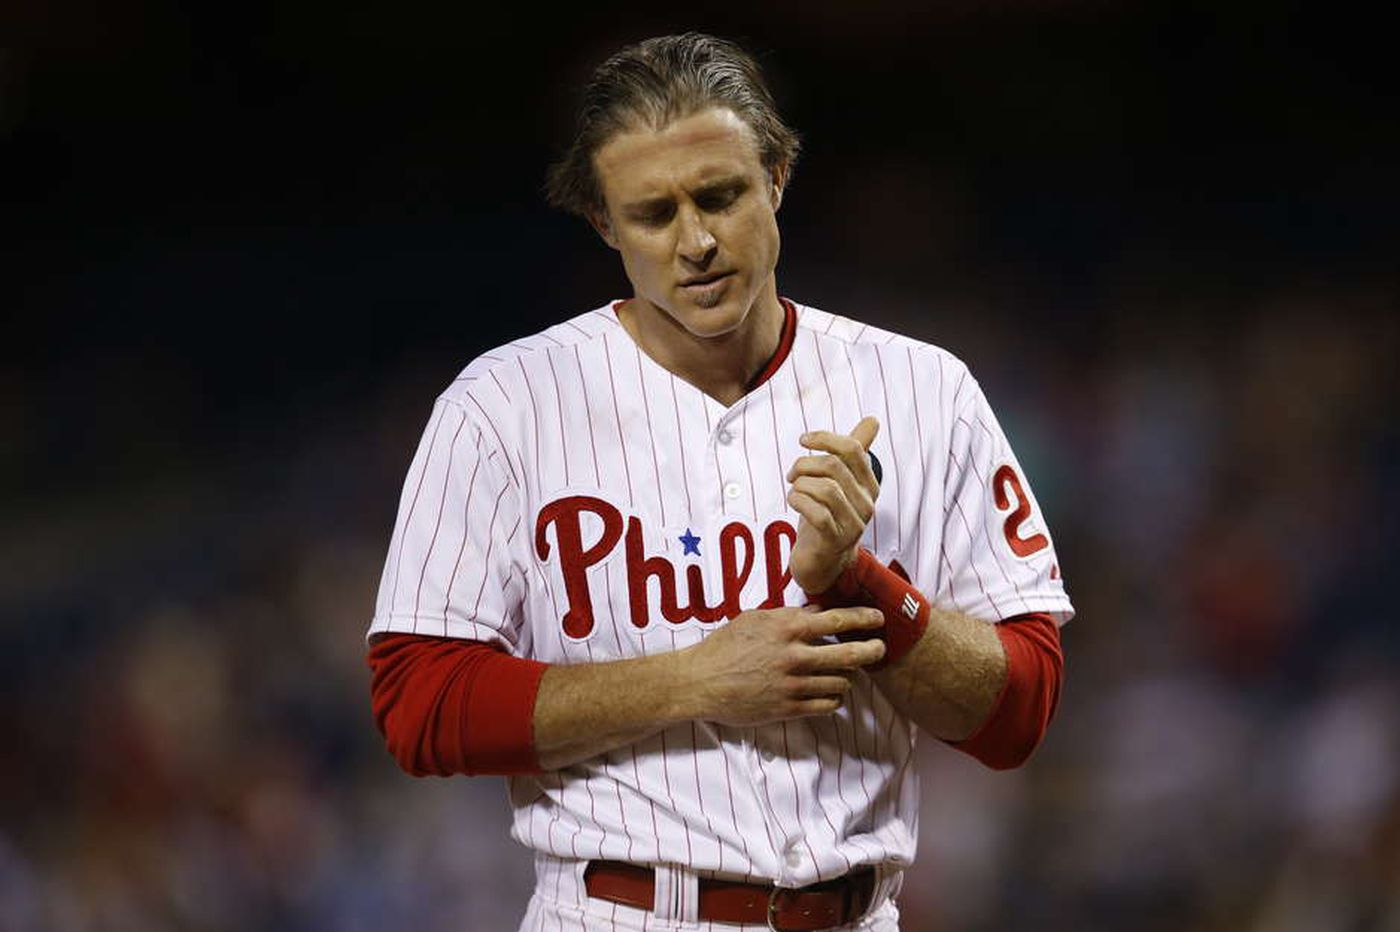 With Rollins departed, seems Utley is staying